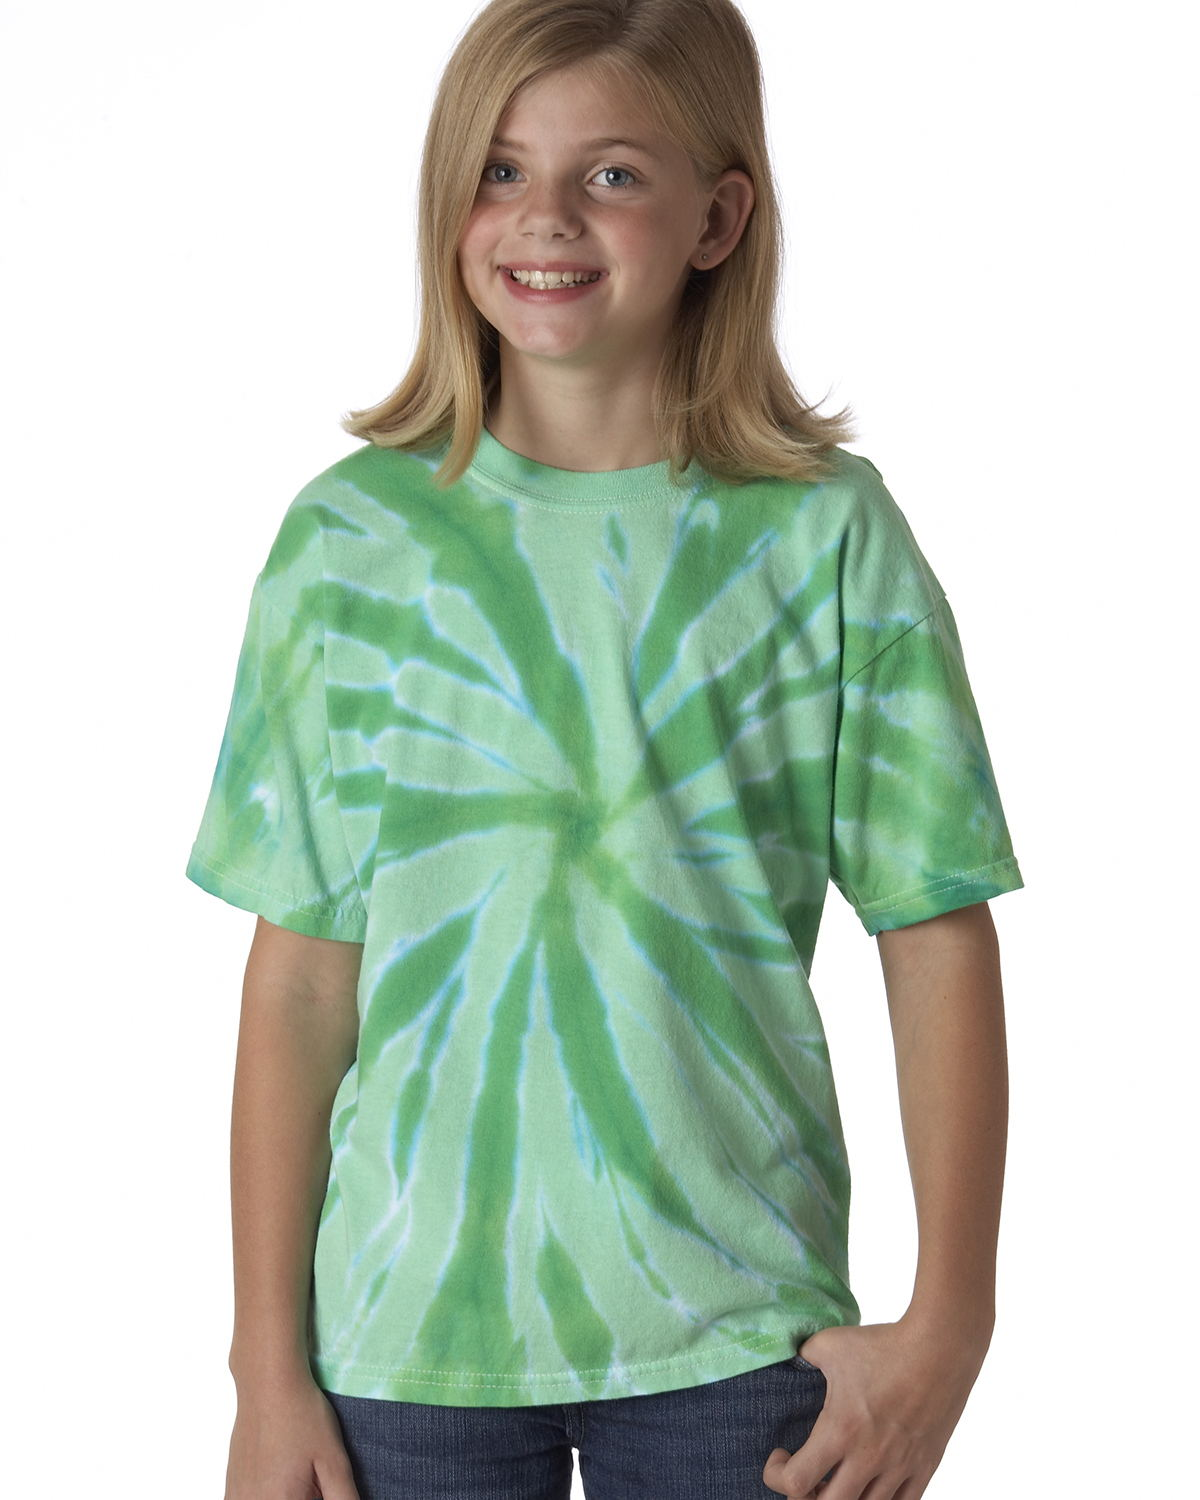 Tie-Dyed 20BTT - Youth Tone-on-Tone Pinwheel Short Sleeve T-Shirt